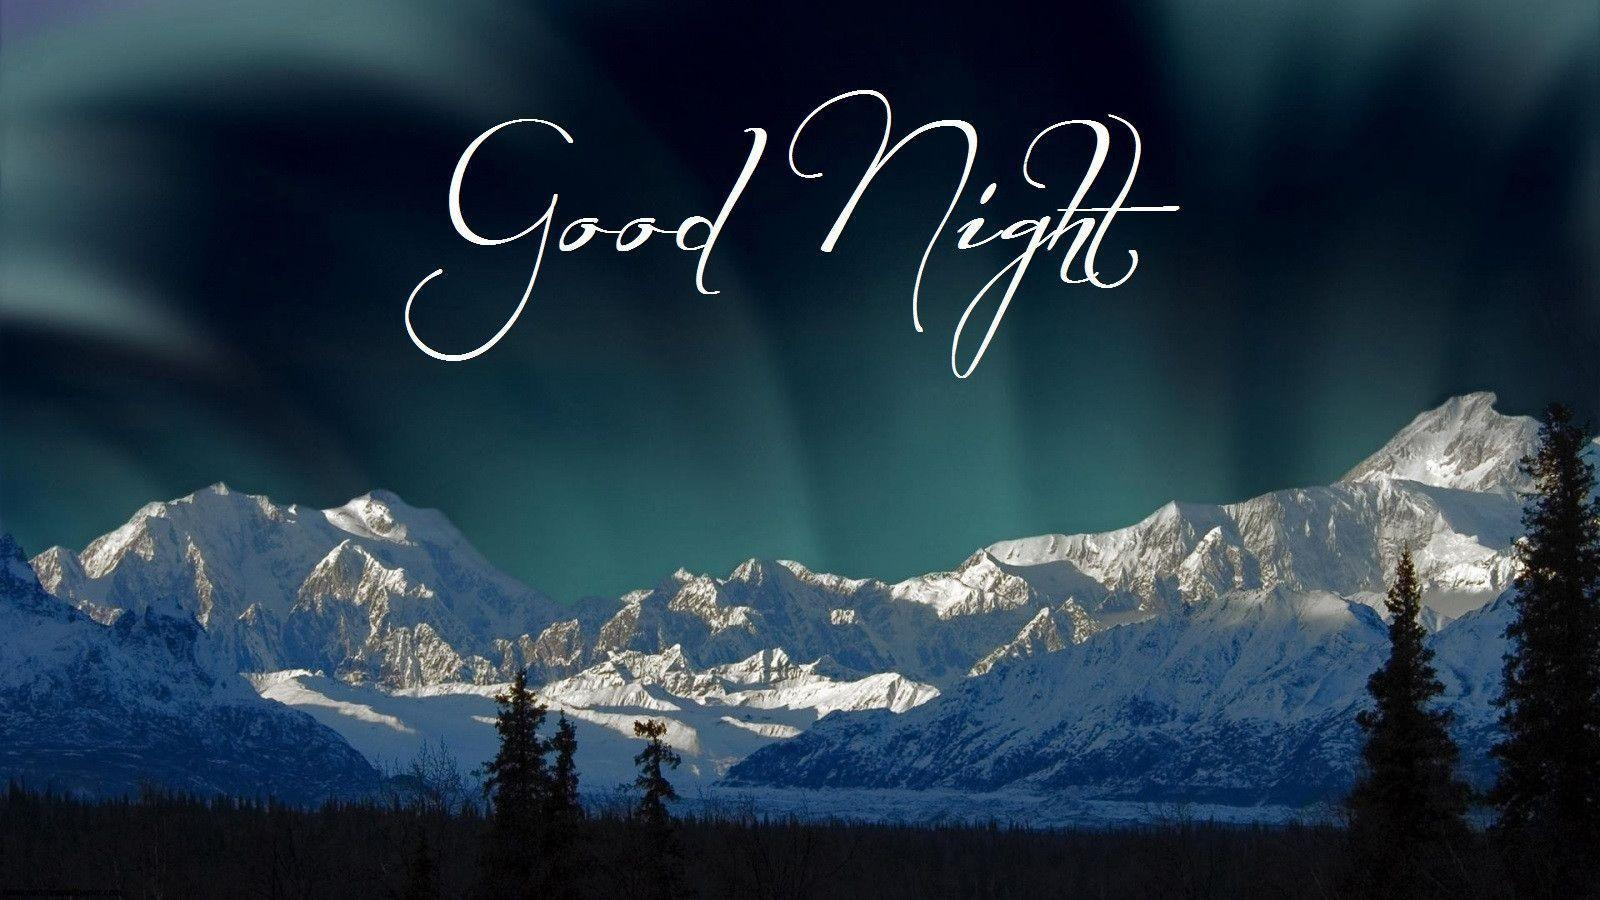 Good night images new download